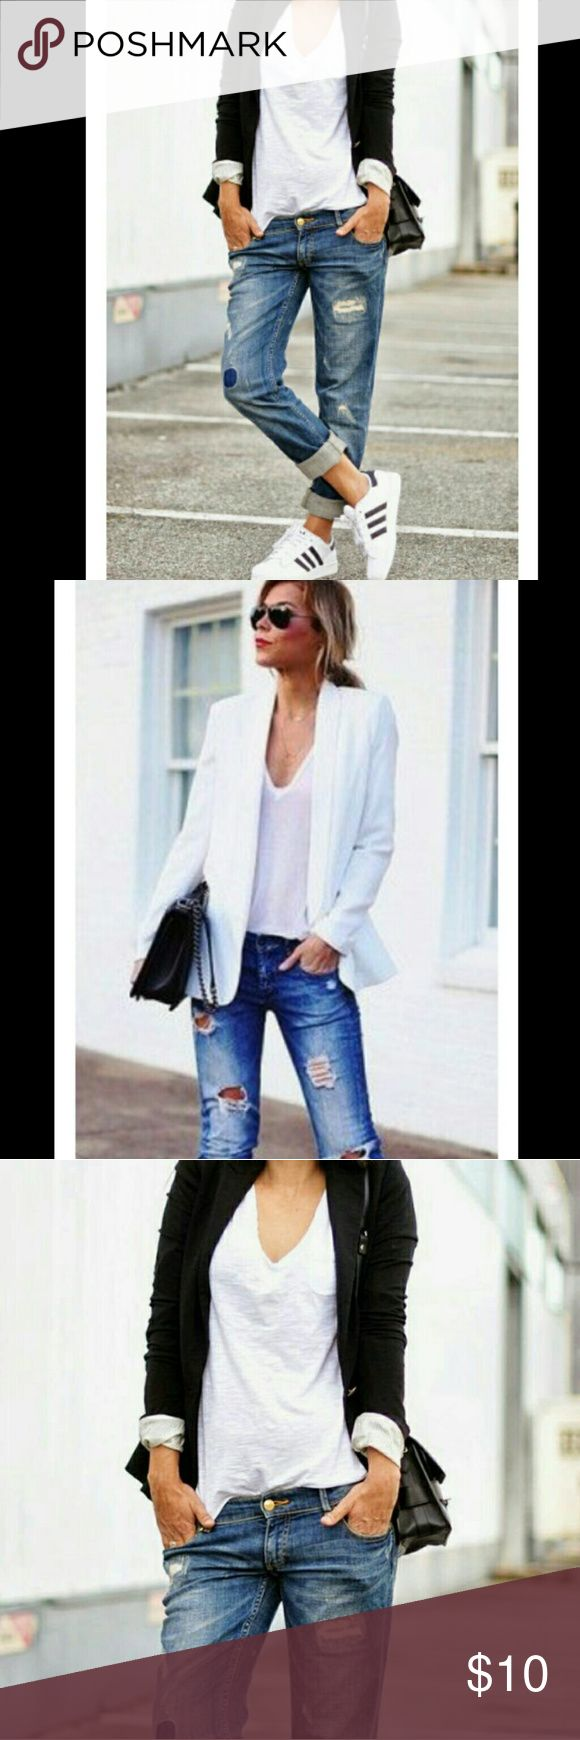 Classic Boyfriend VNeck White Tee Shirt See last picture for item details boutique  Tops Tees - Short Sleeve